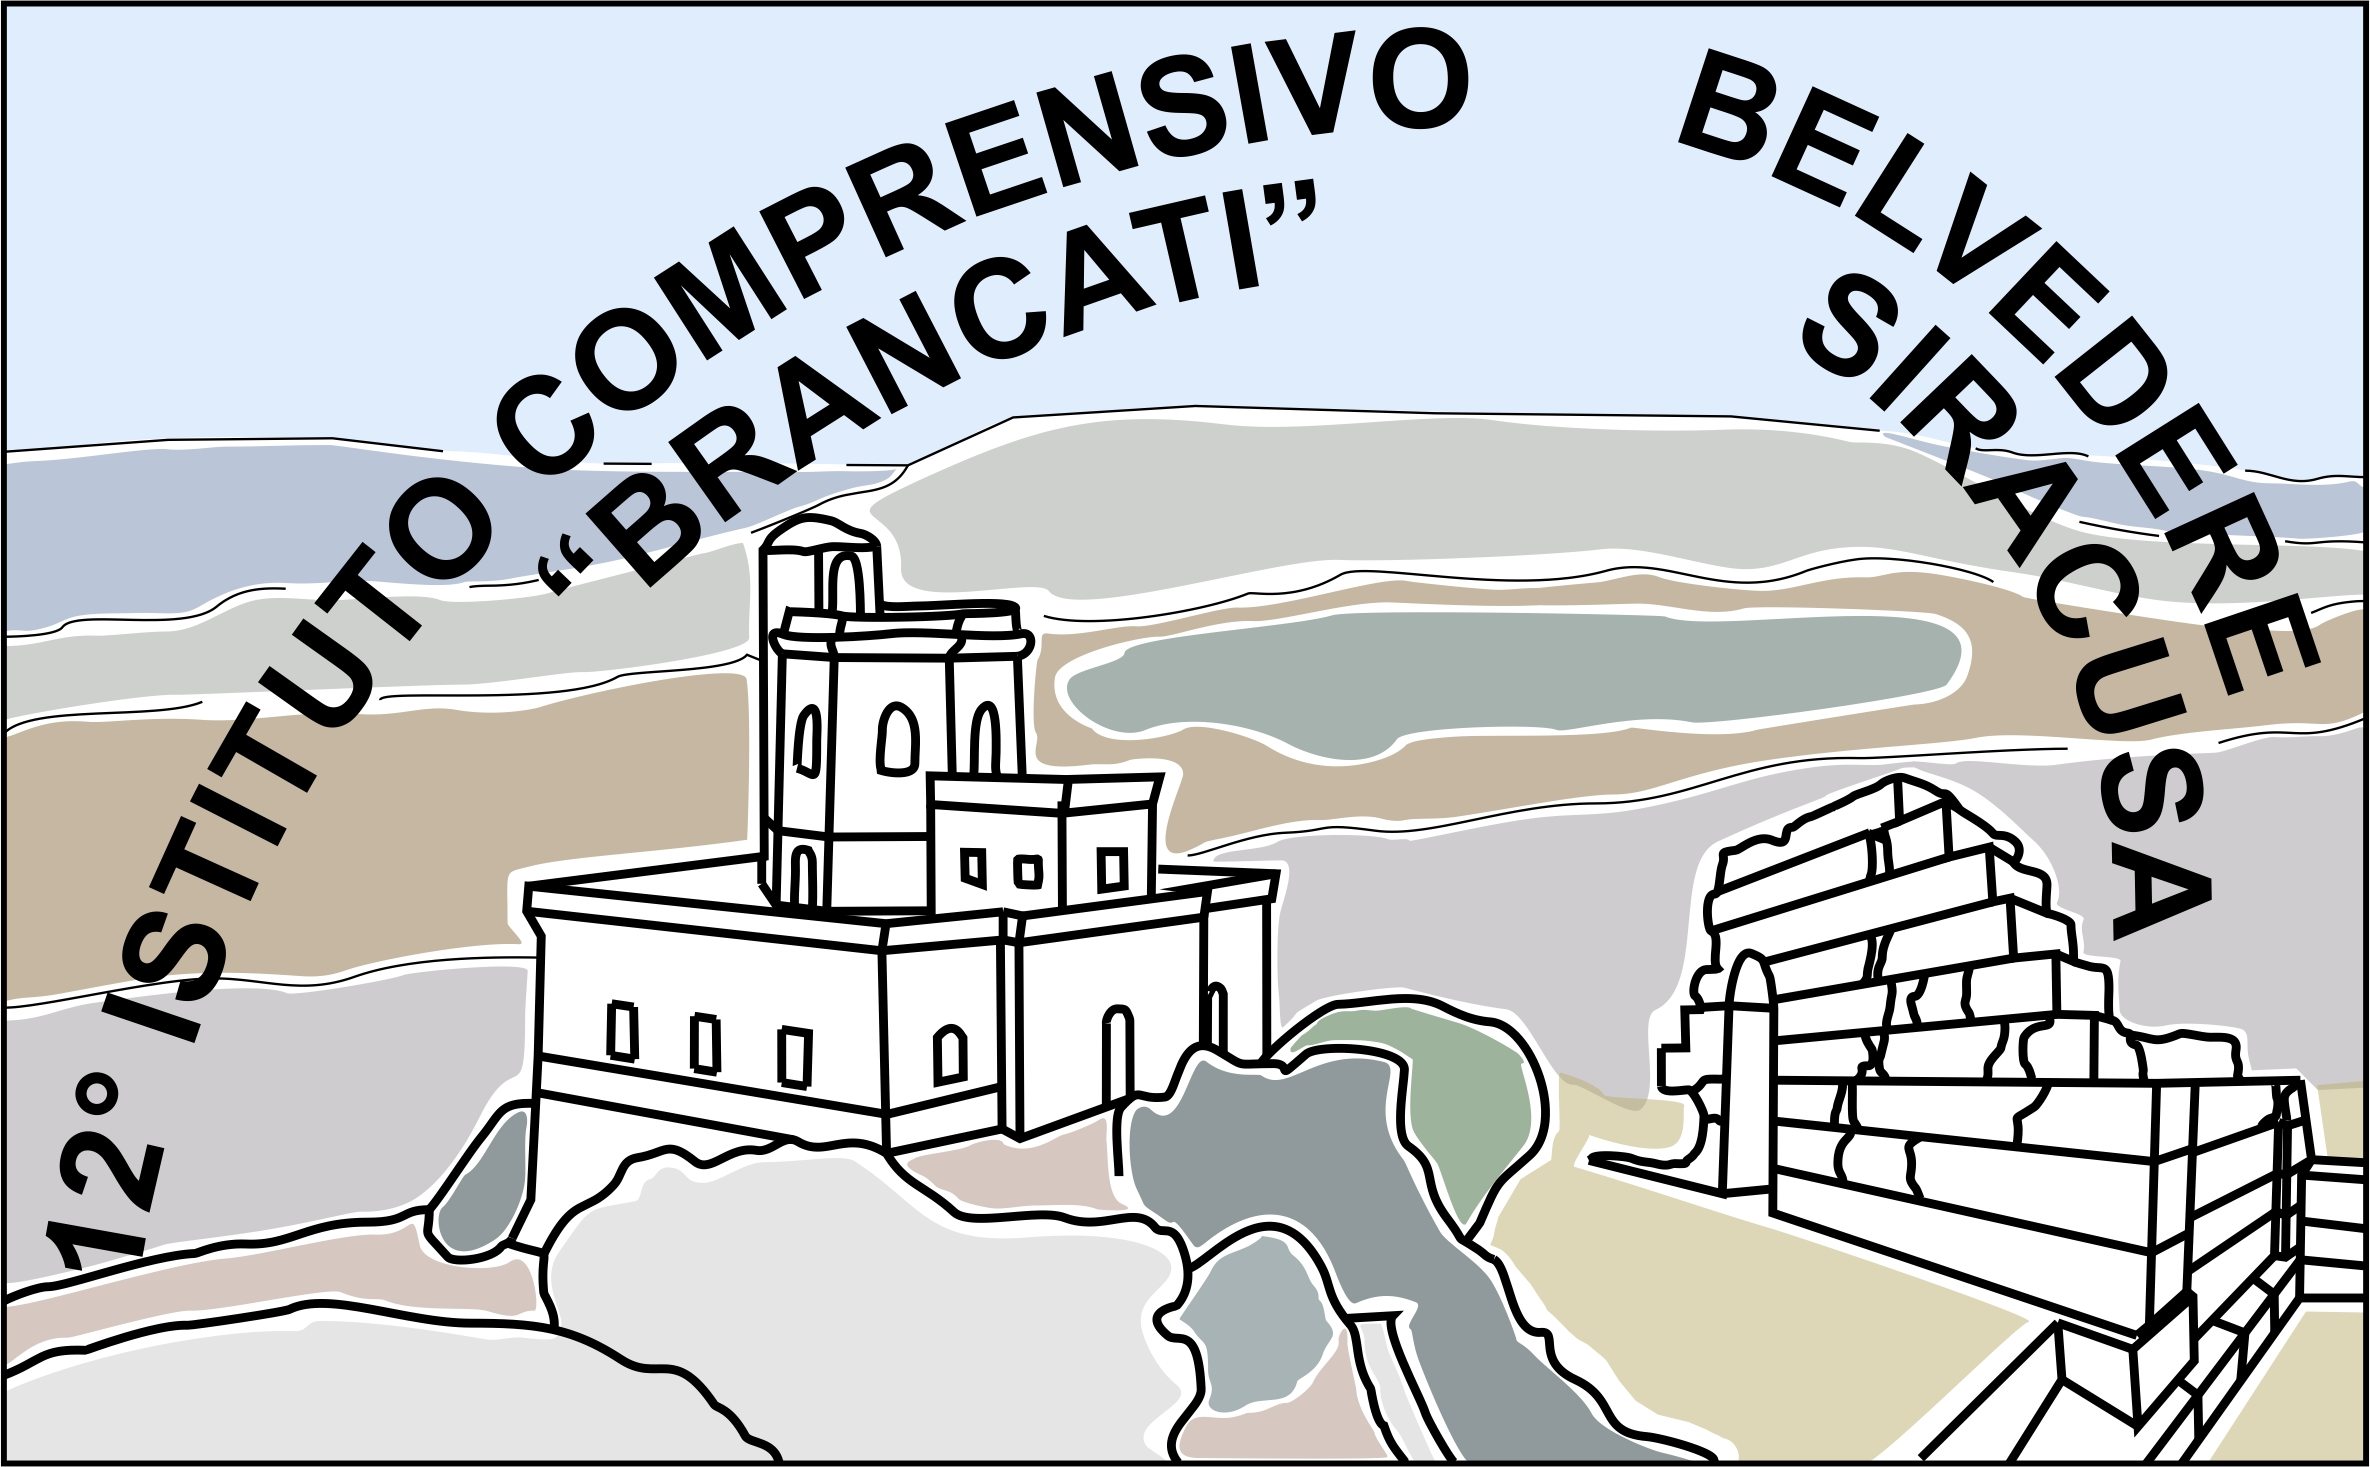 XII Istituto Comprensivo di Siracusa logo